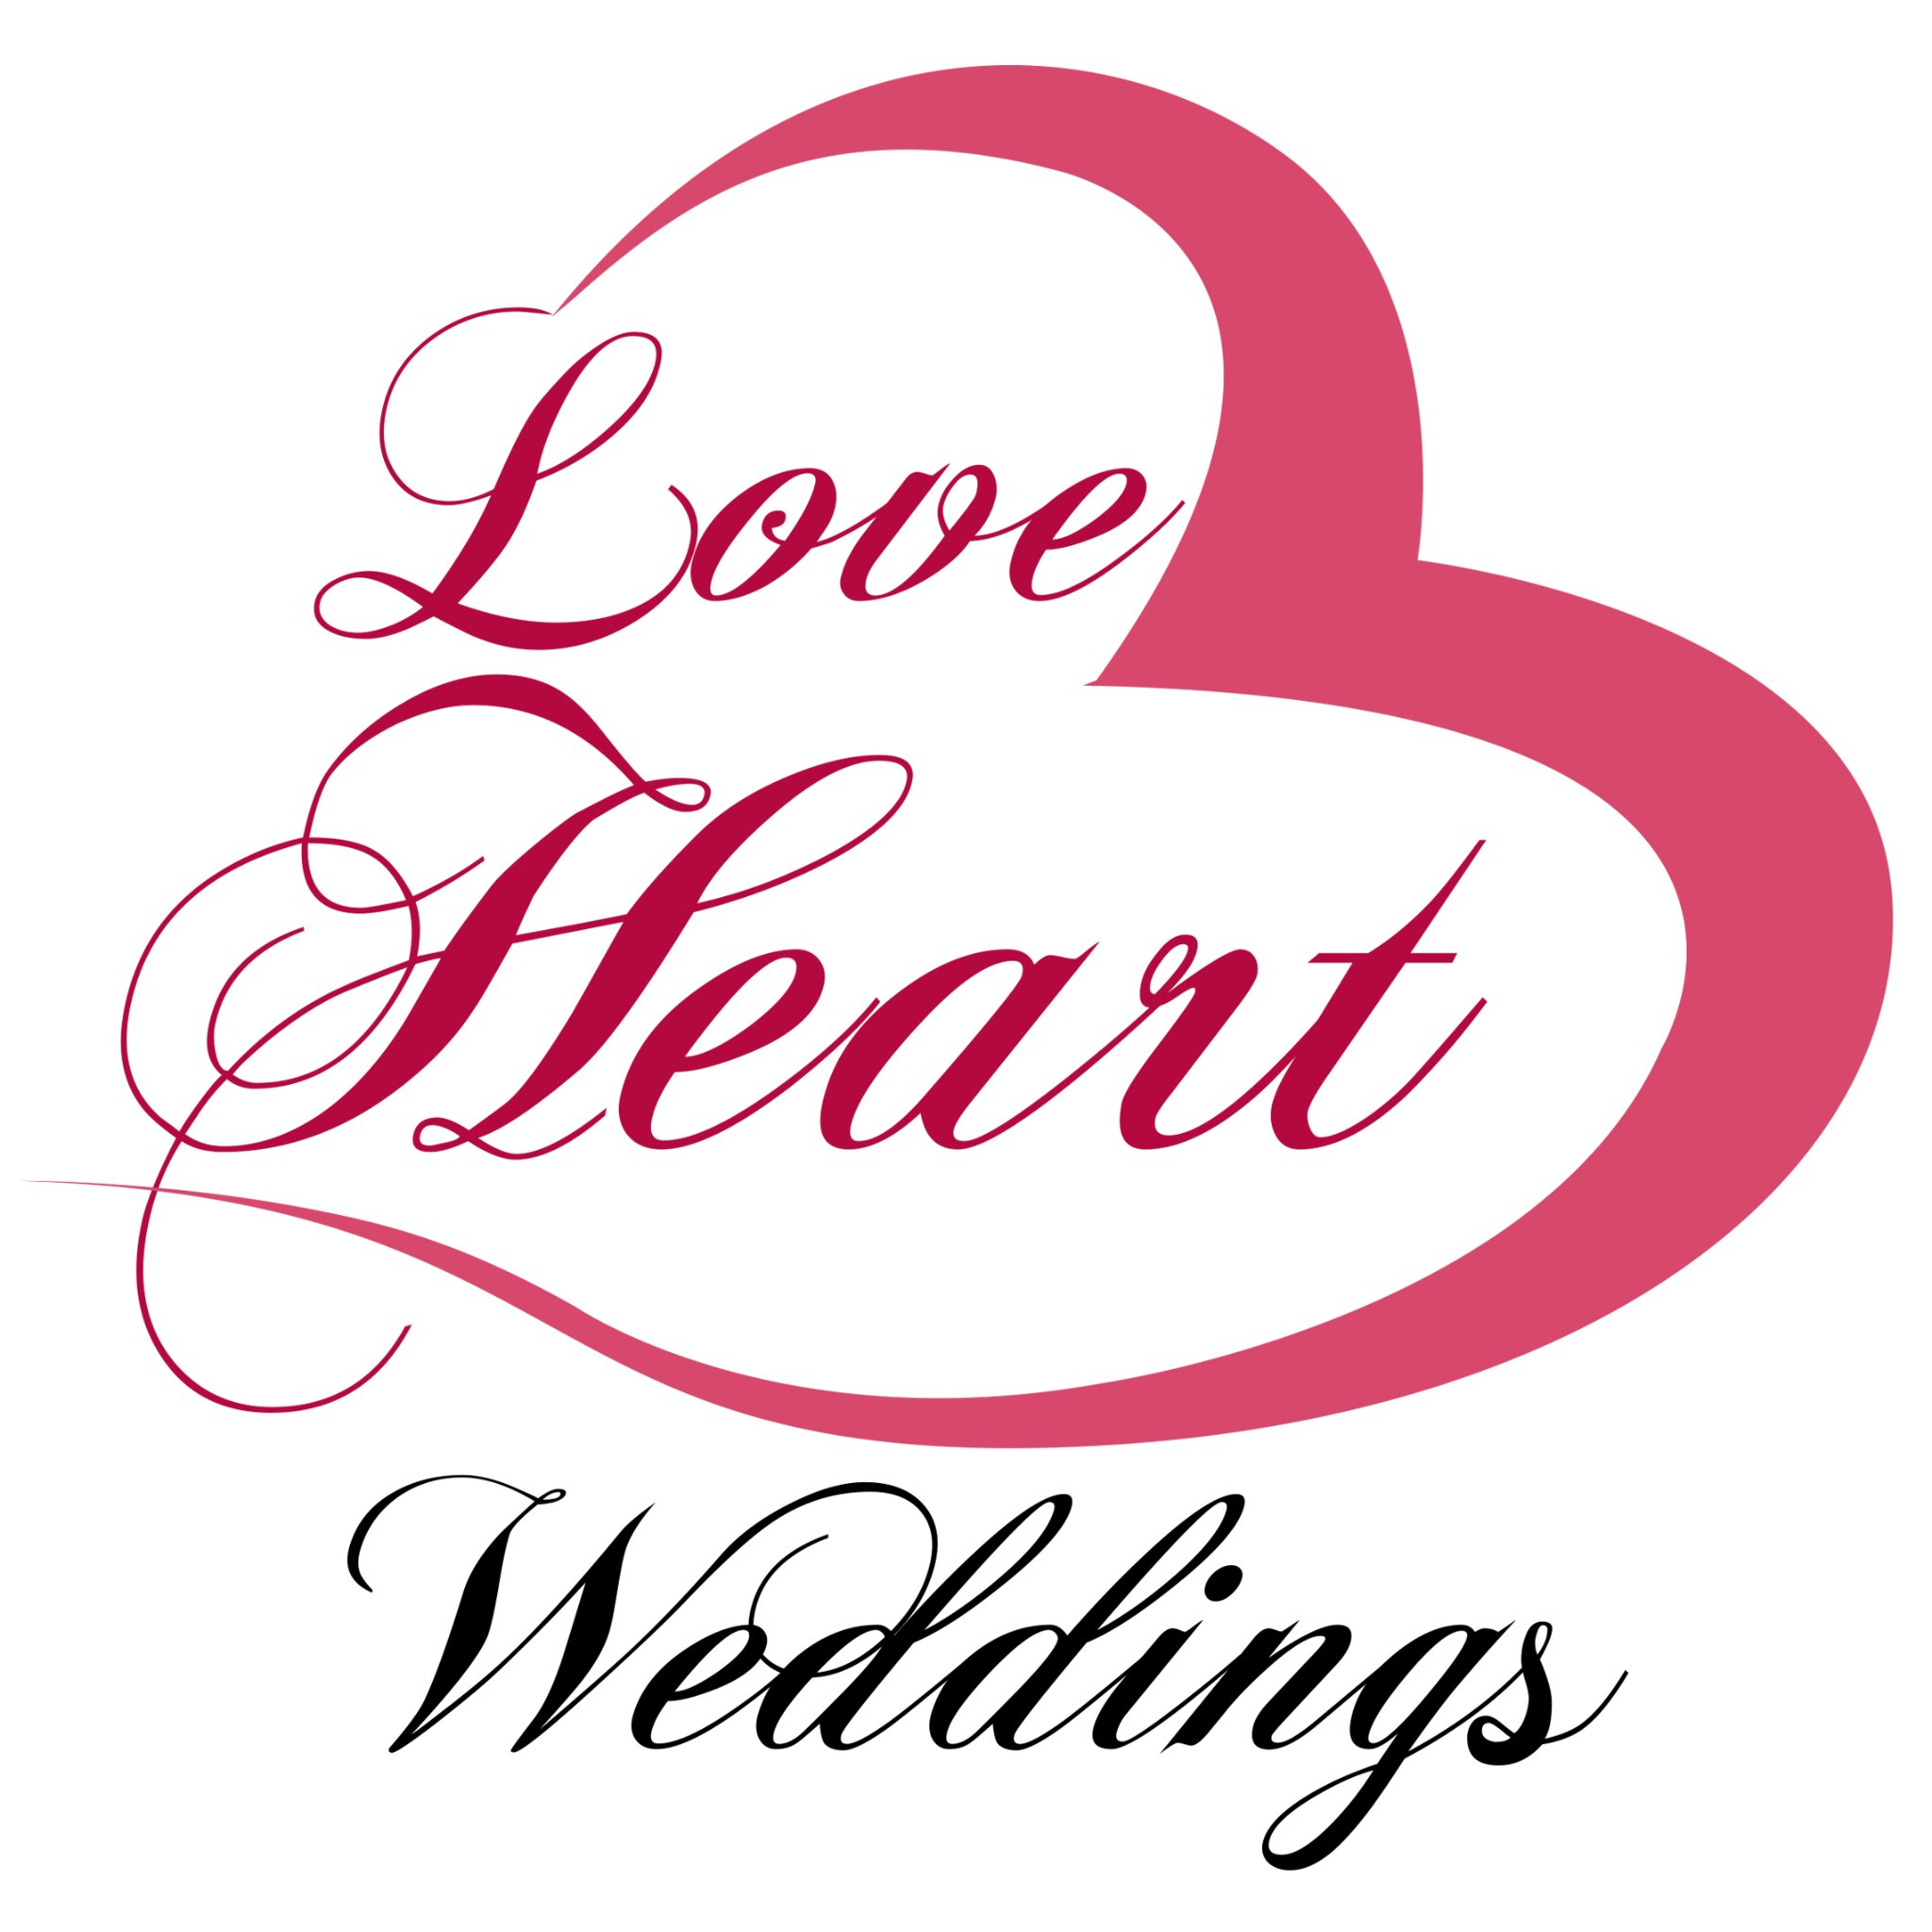 Love Heart Weddings (@loveheartcrete)  Twitter. Wide Band Rings. Flower Bouquet Engagement Rings. Twist Engagement Rings. Famous Women's Engagement Rings. Aniversary Rings. Pancharatna Rings. Northern Rings. Invisible Engagement Rings